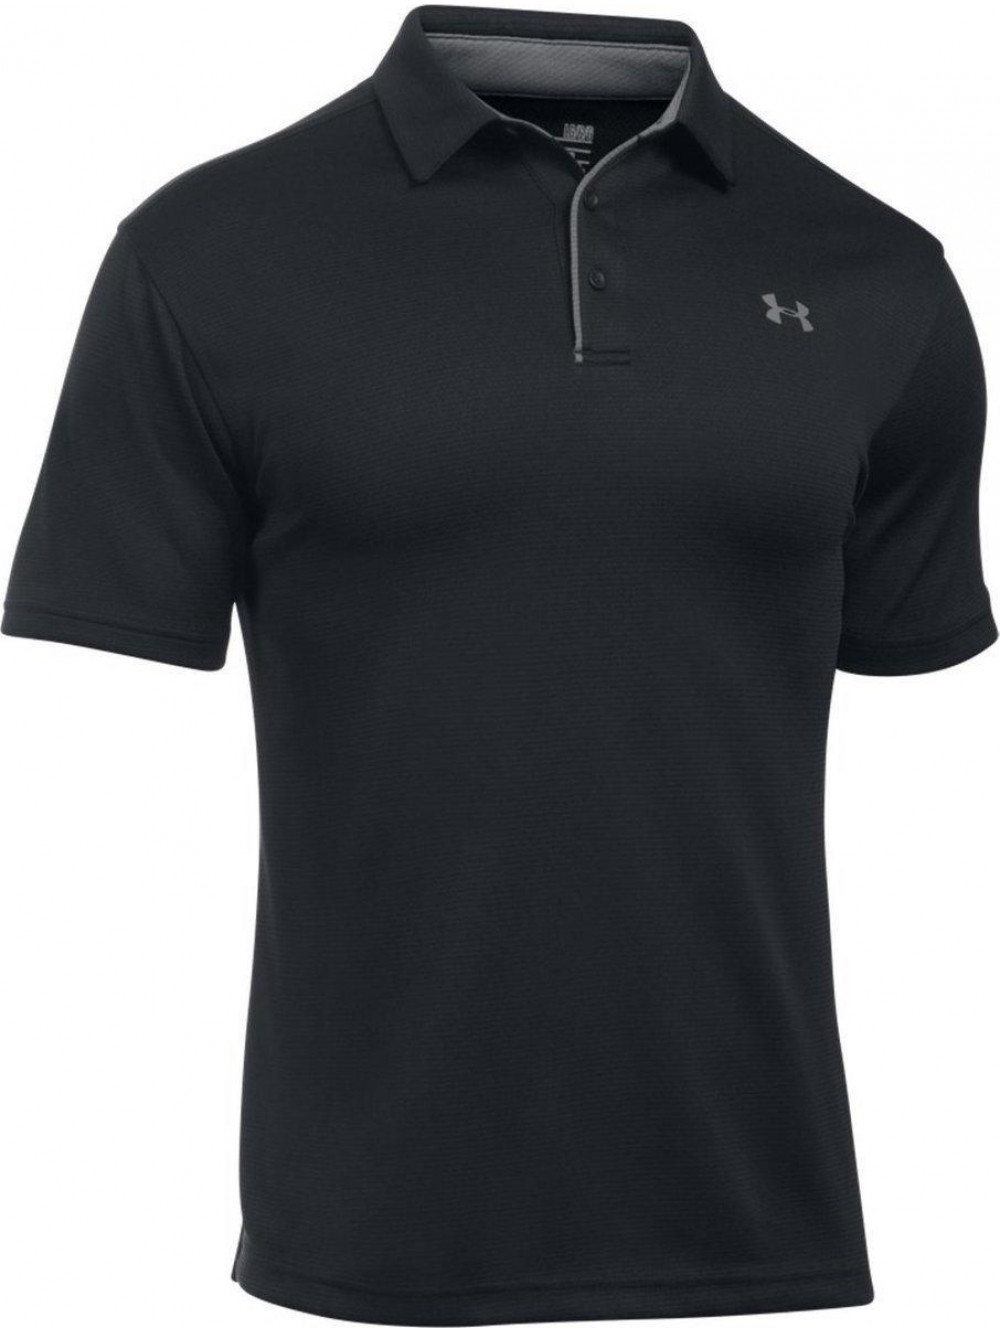 Tričko Under Armour Tech Polo čierne